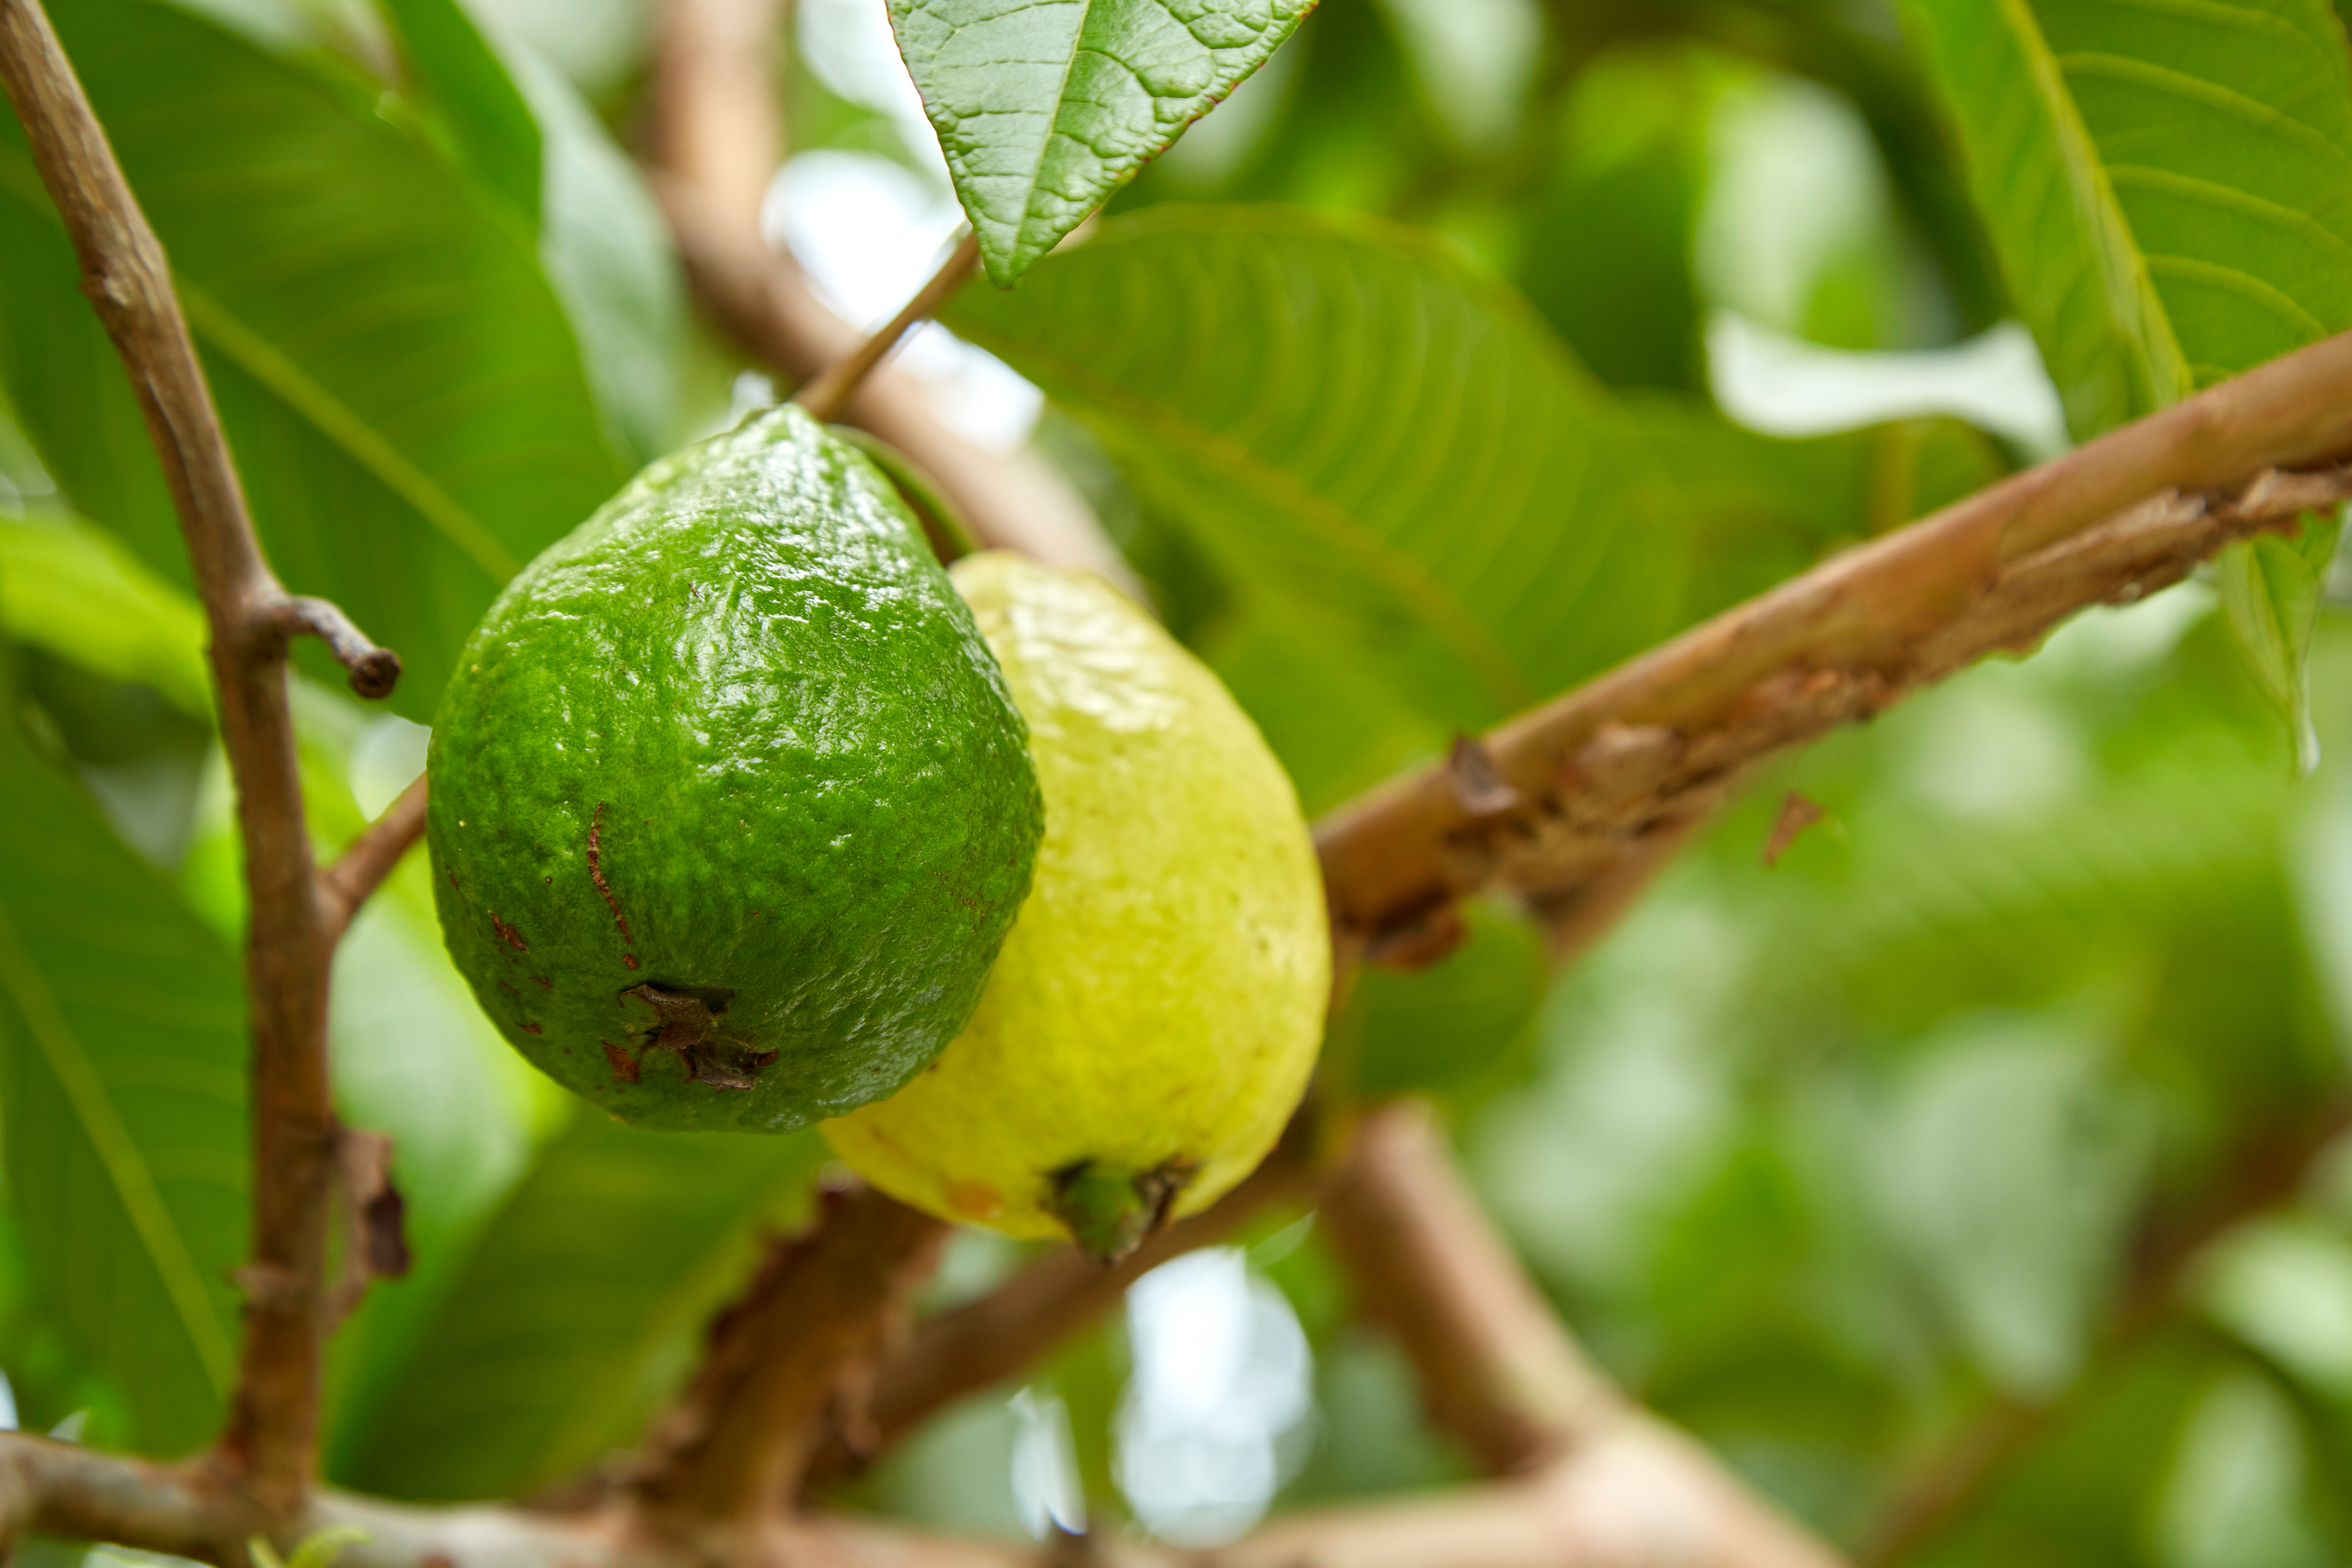 fc7713d6d How Long to Harvest Guavas? | Home Guides | SF Gate